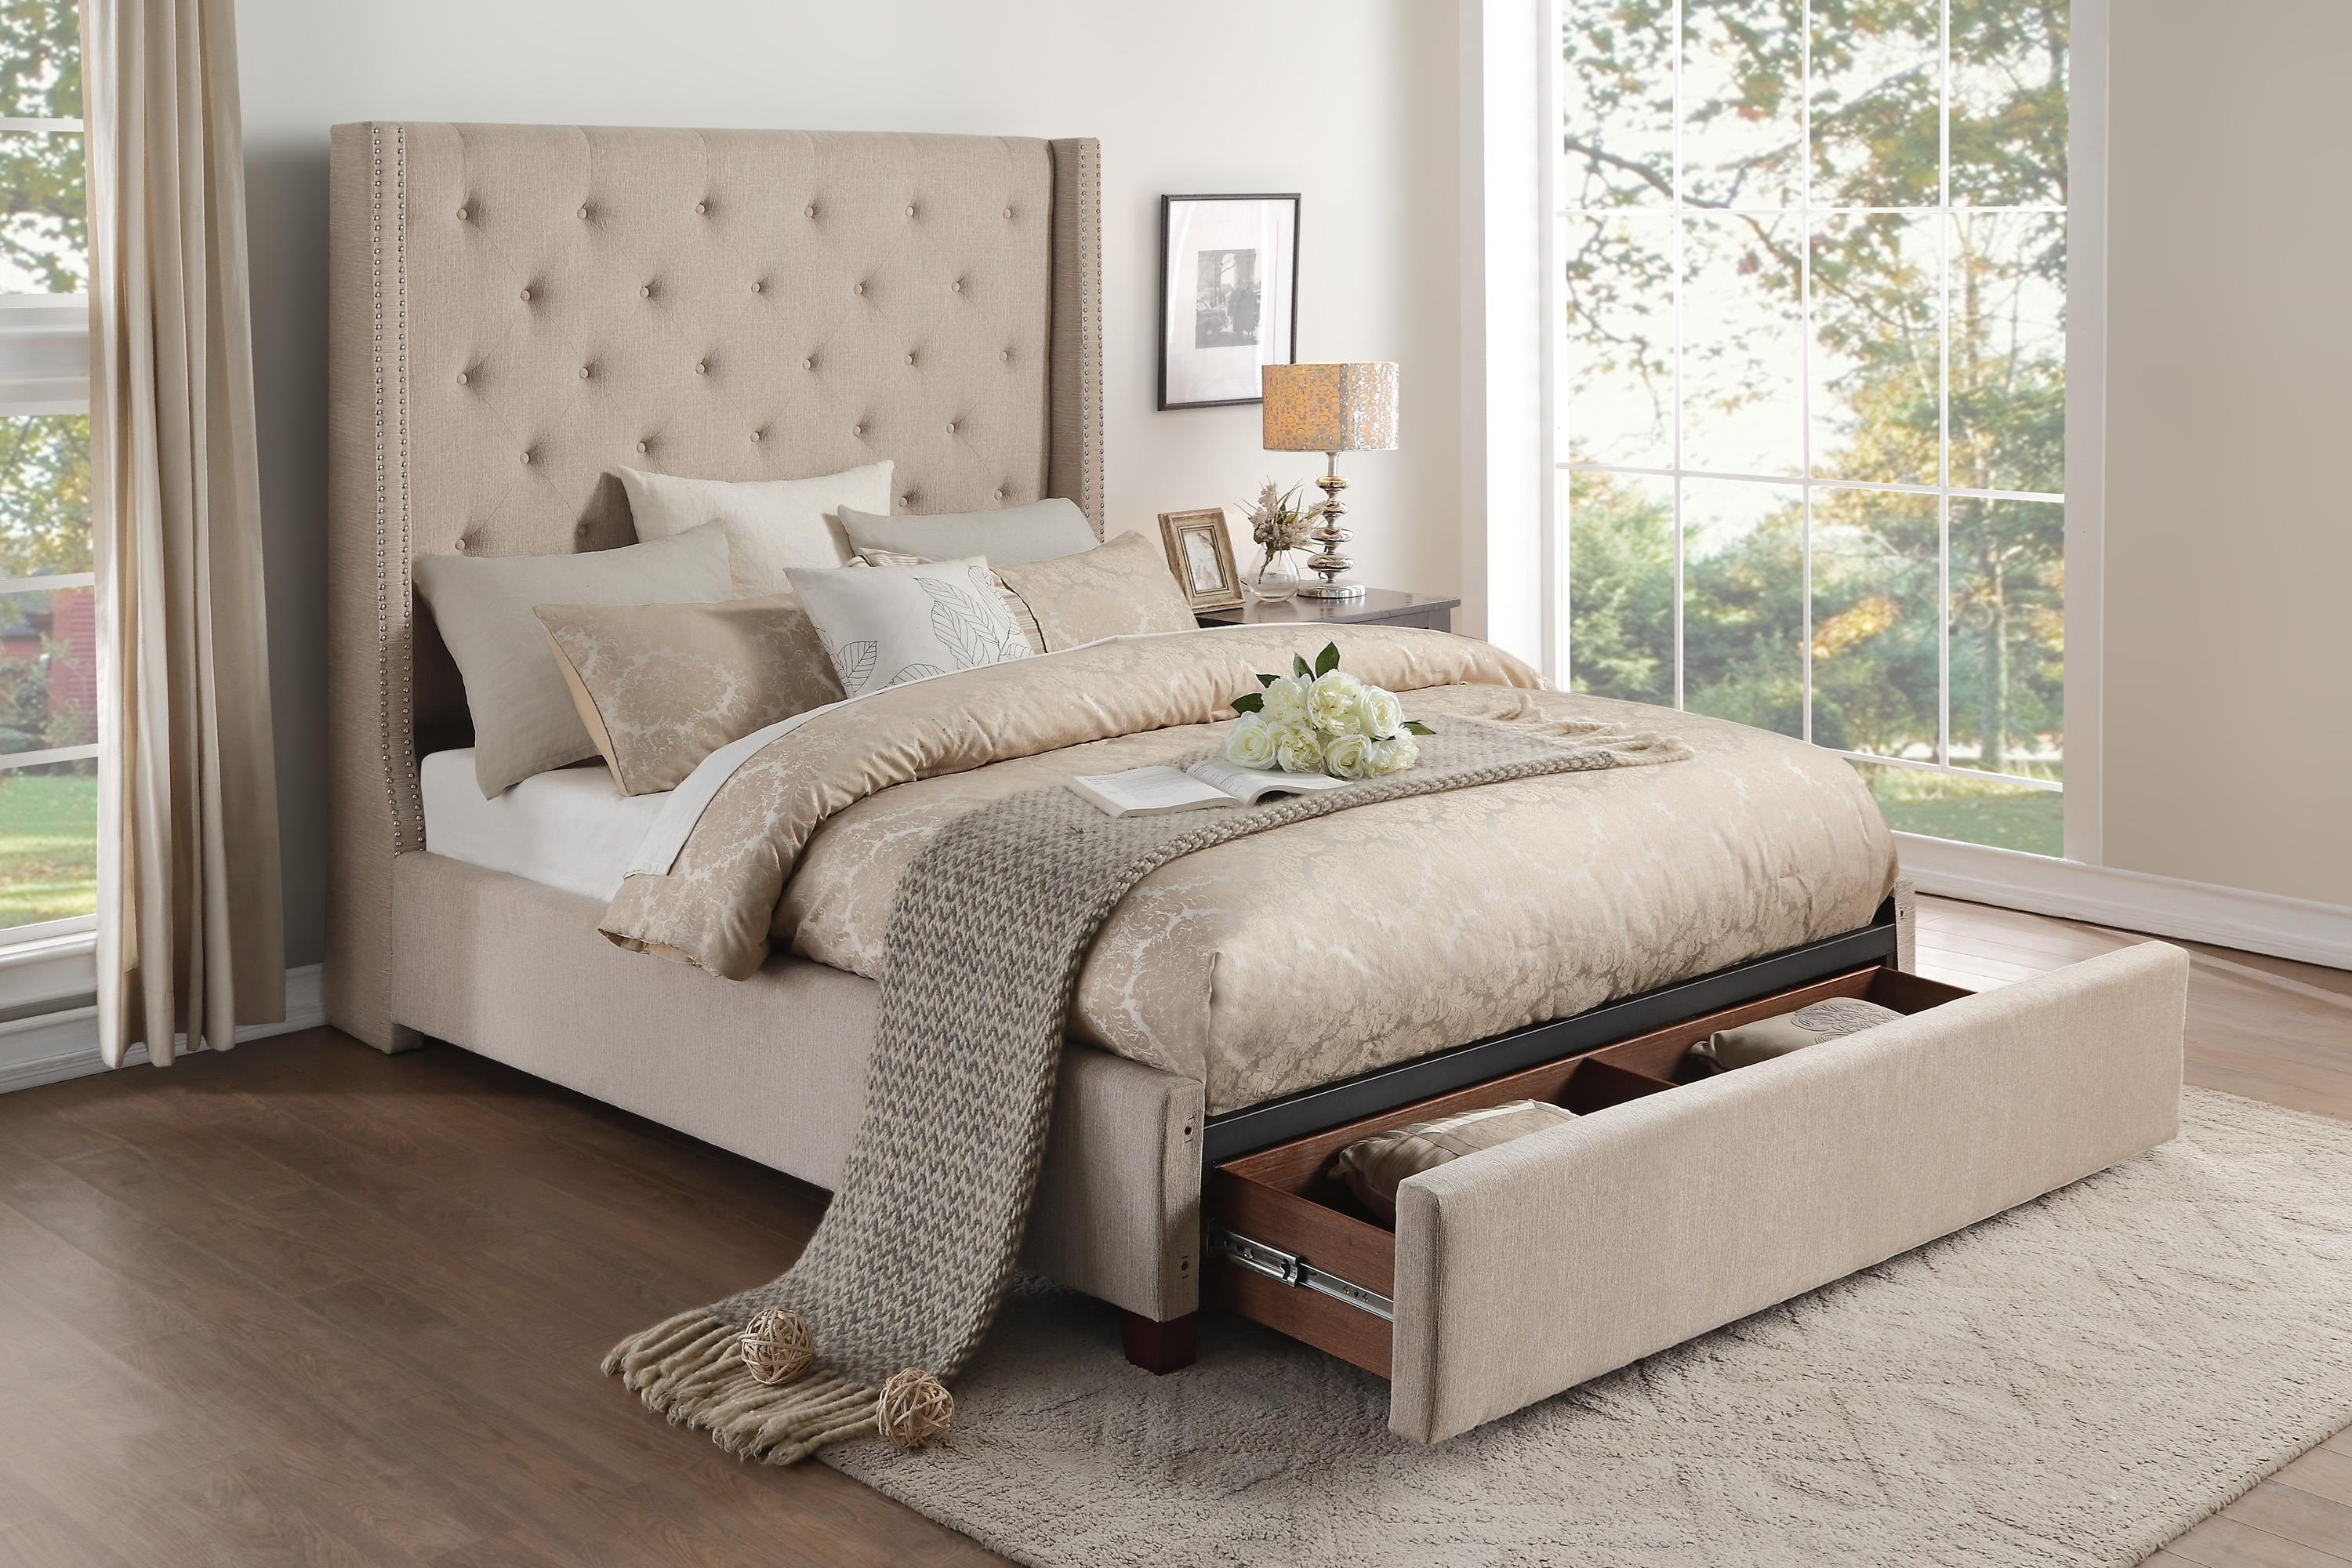 Geneva King Upholstered Storage Bed by Home Style at Walker's Furniture